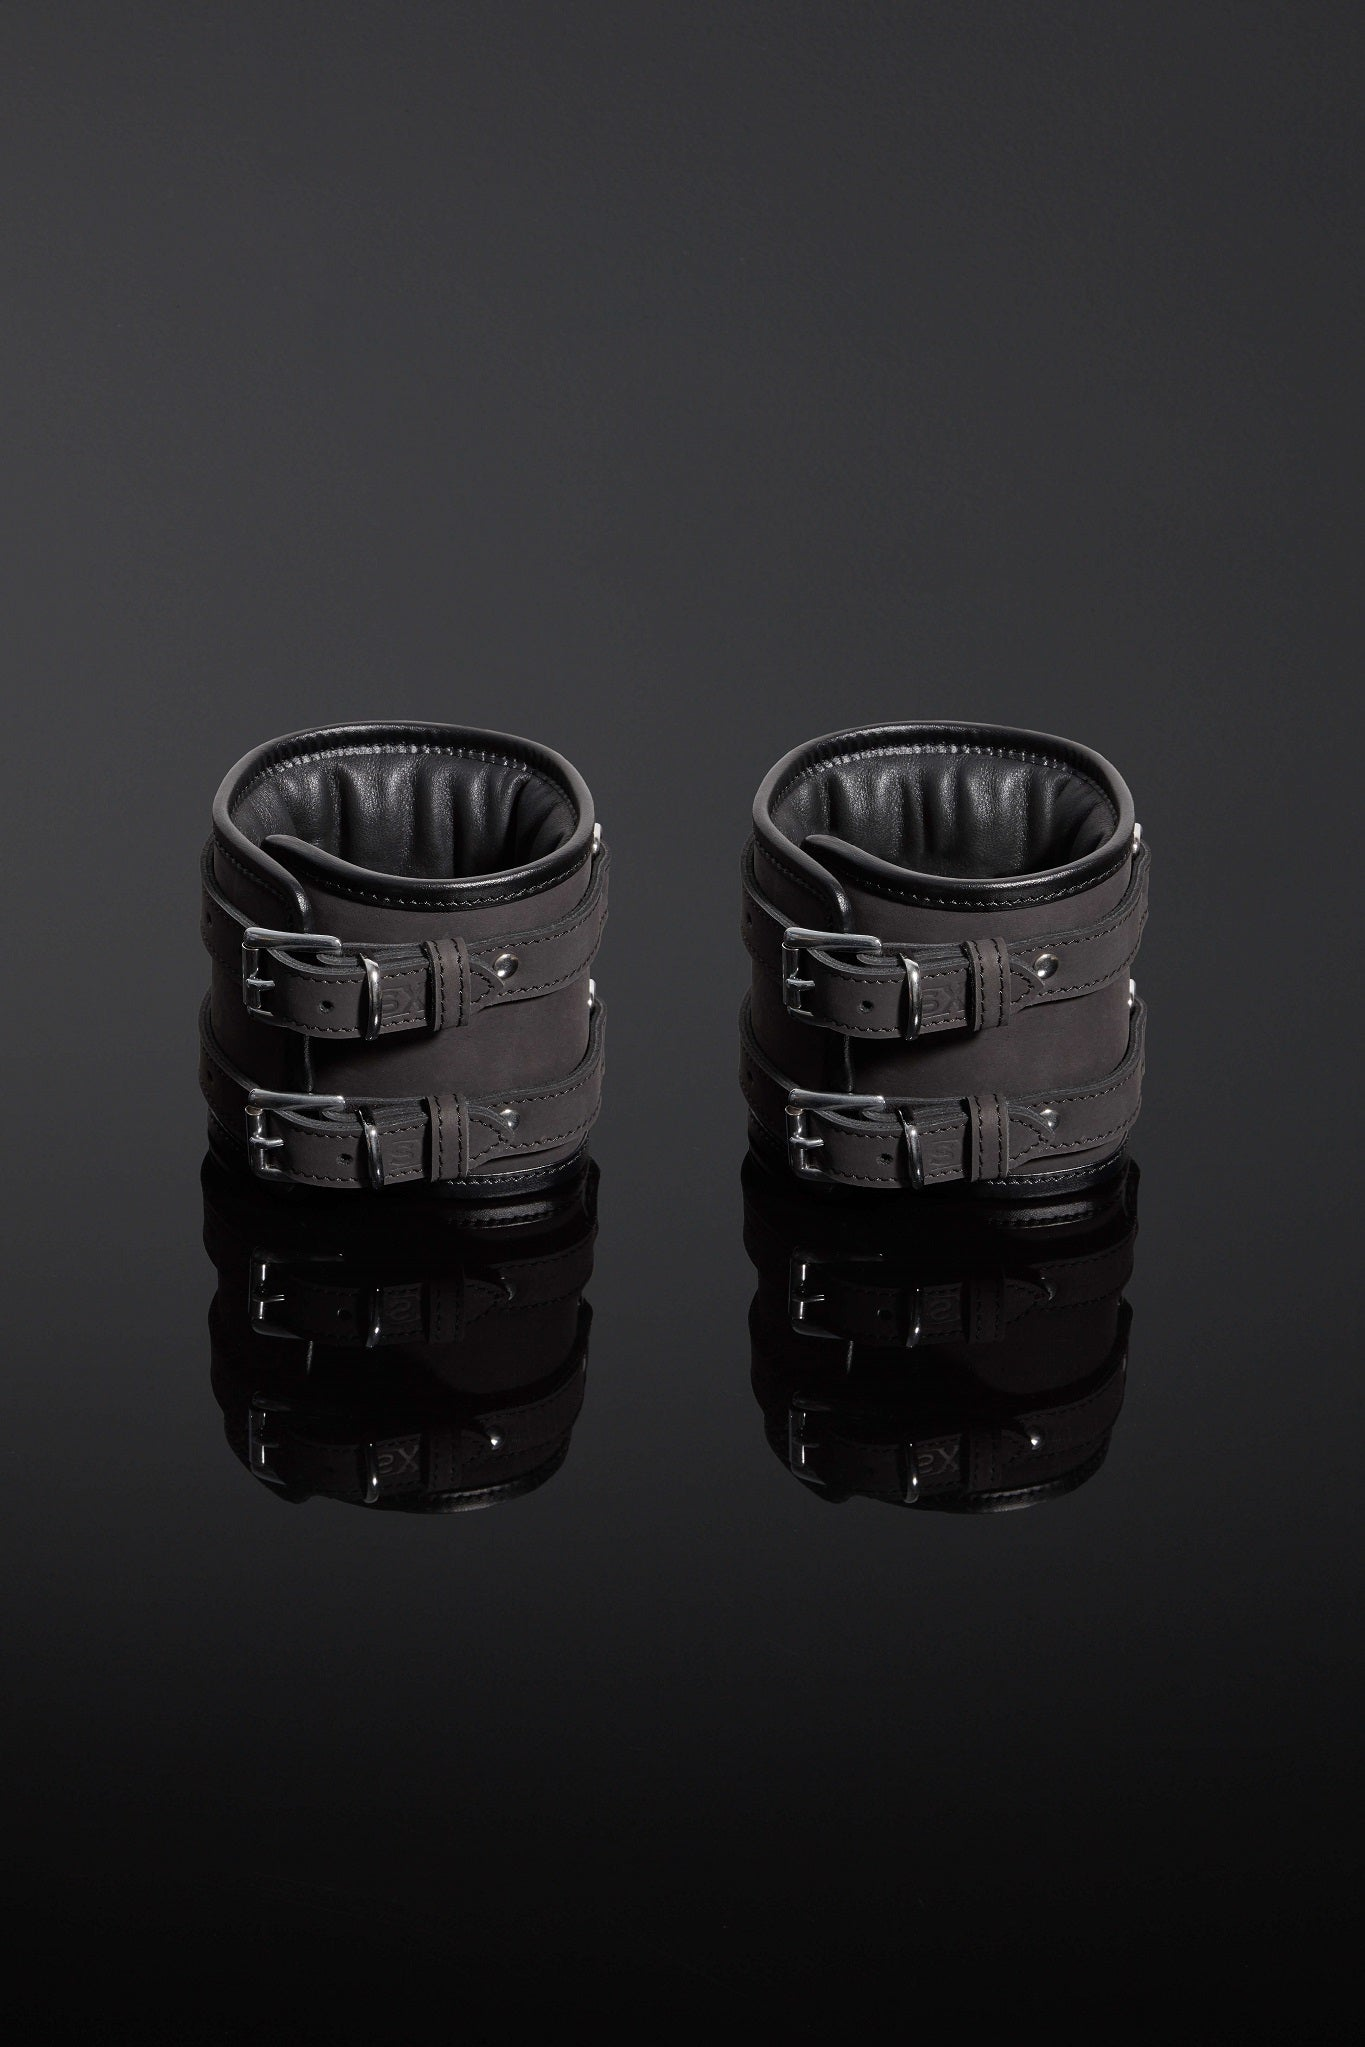 House of SXN - Servage Nubuck Leather Bondage Cuffs 4